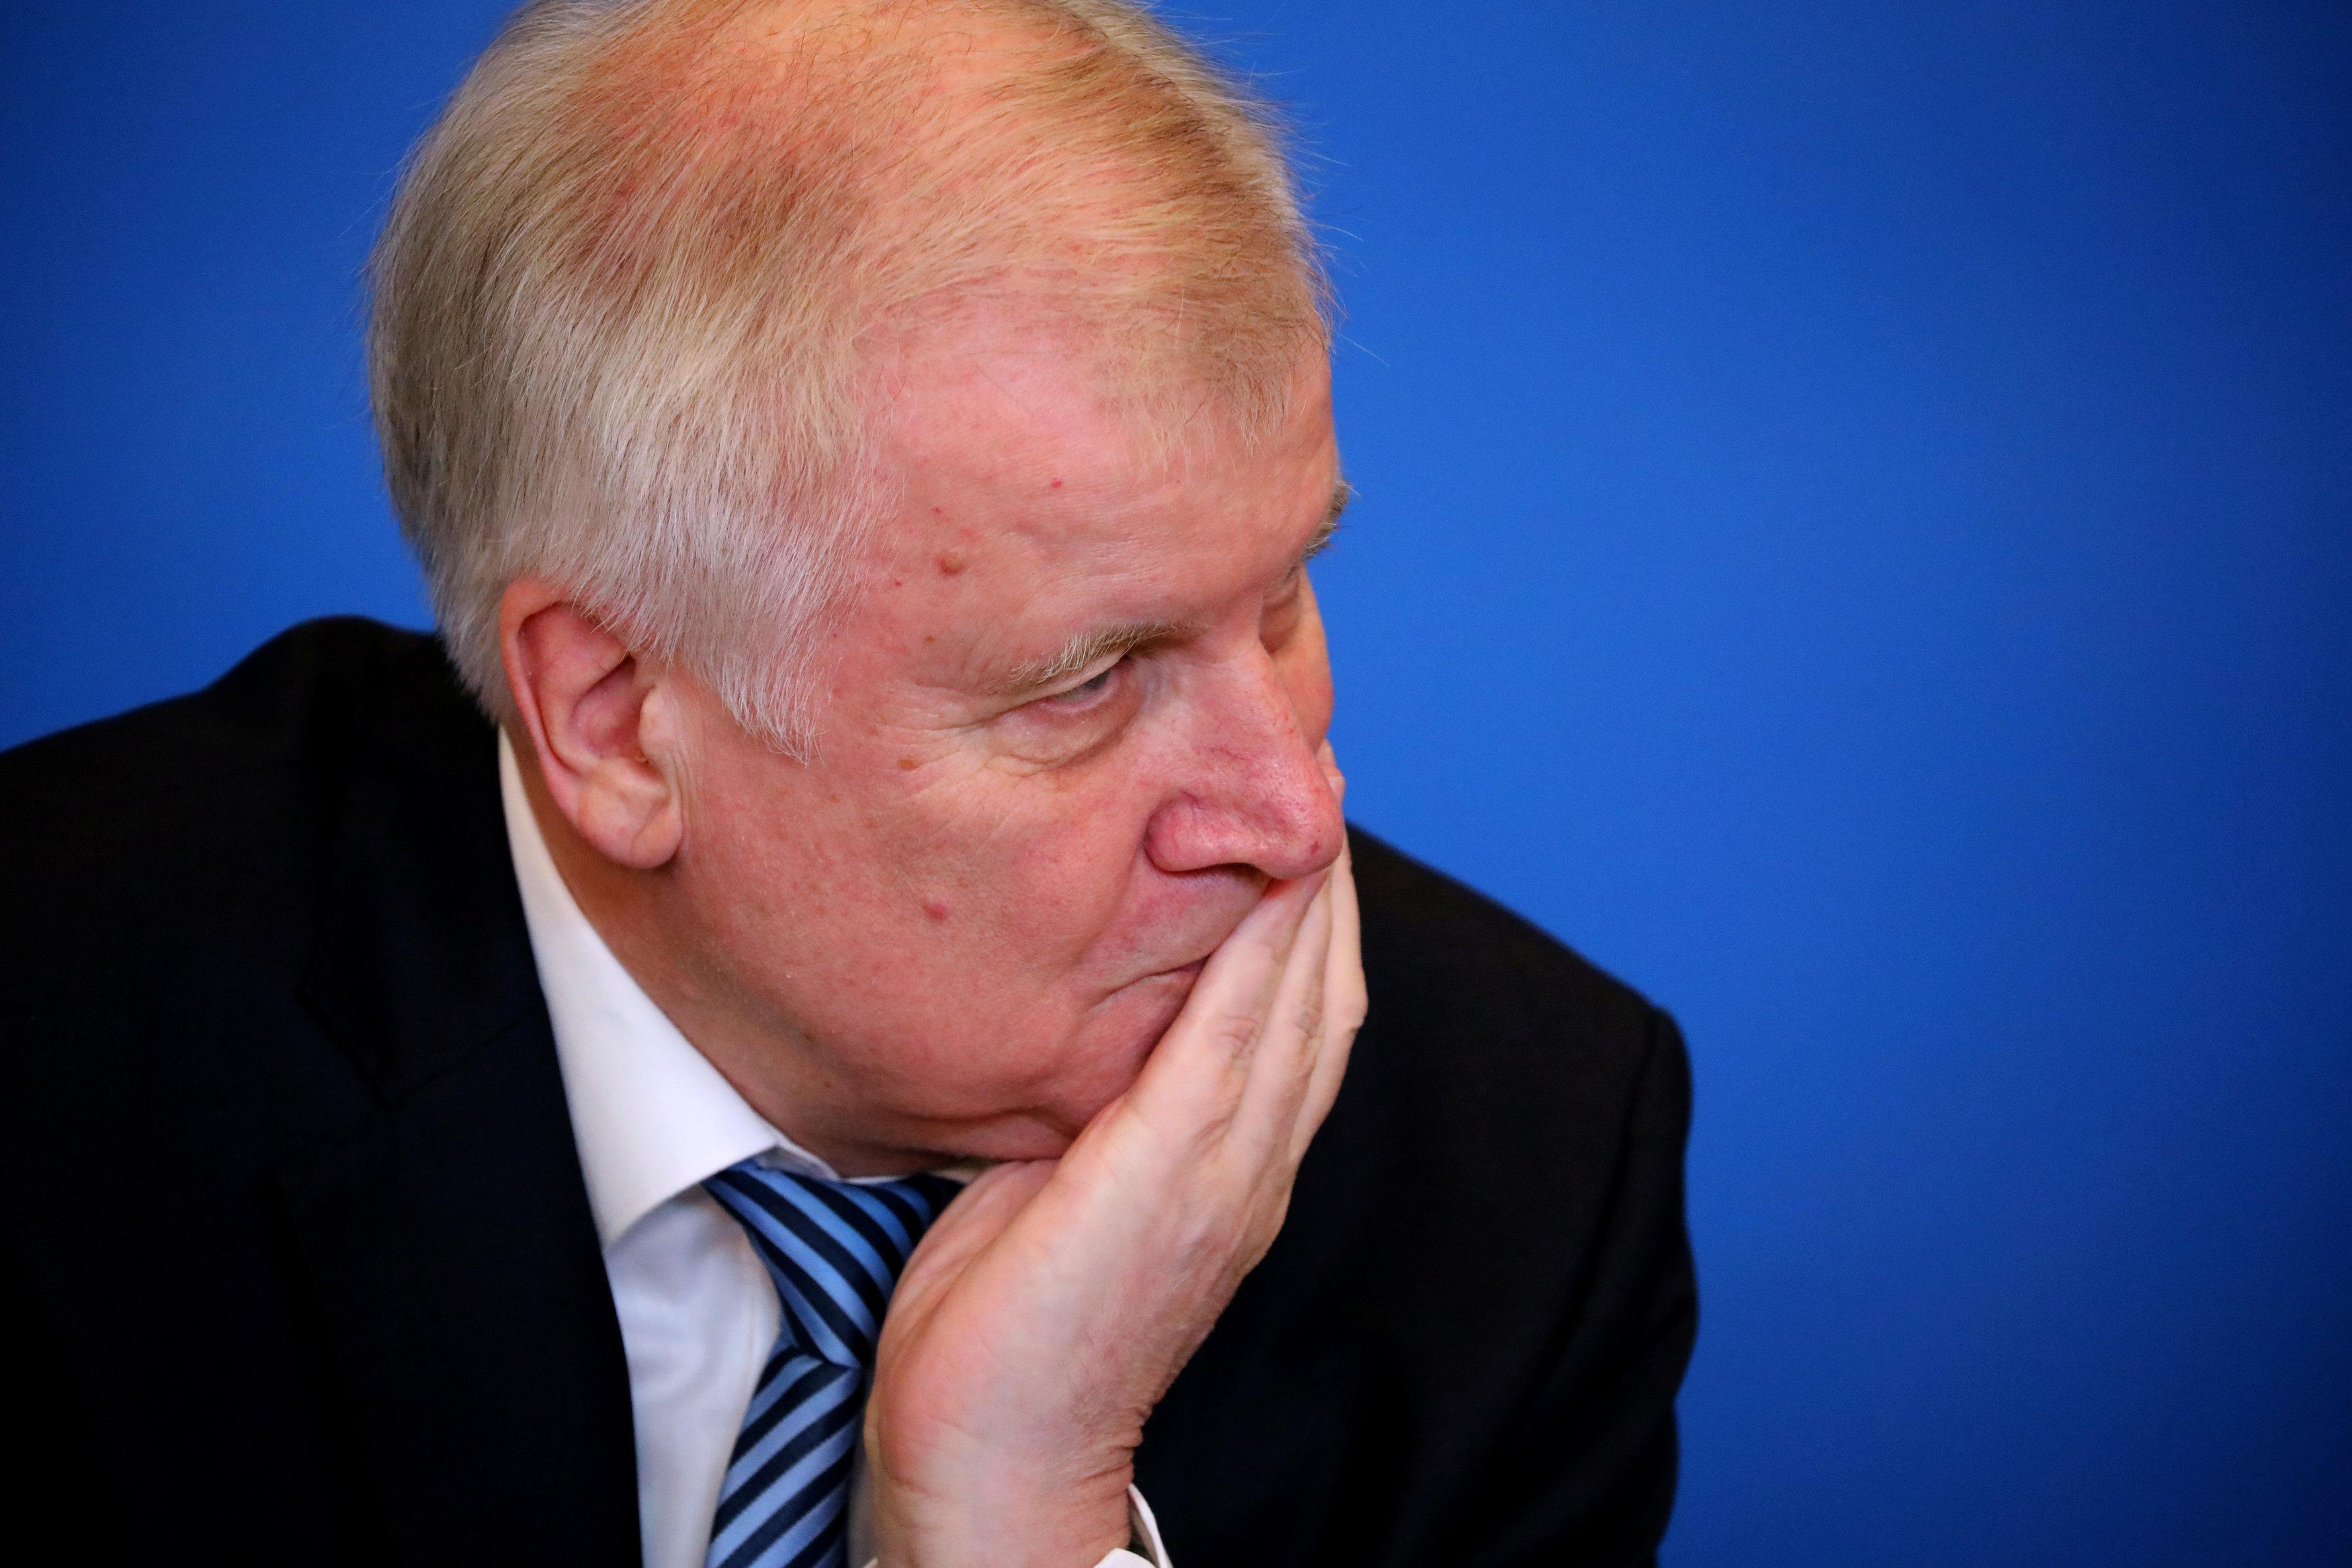 German Interior Minister Horst Seehofer presents his